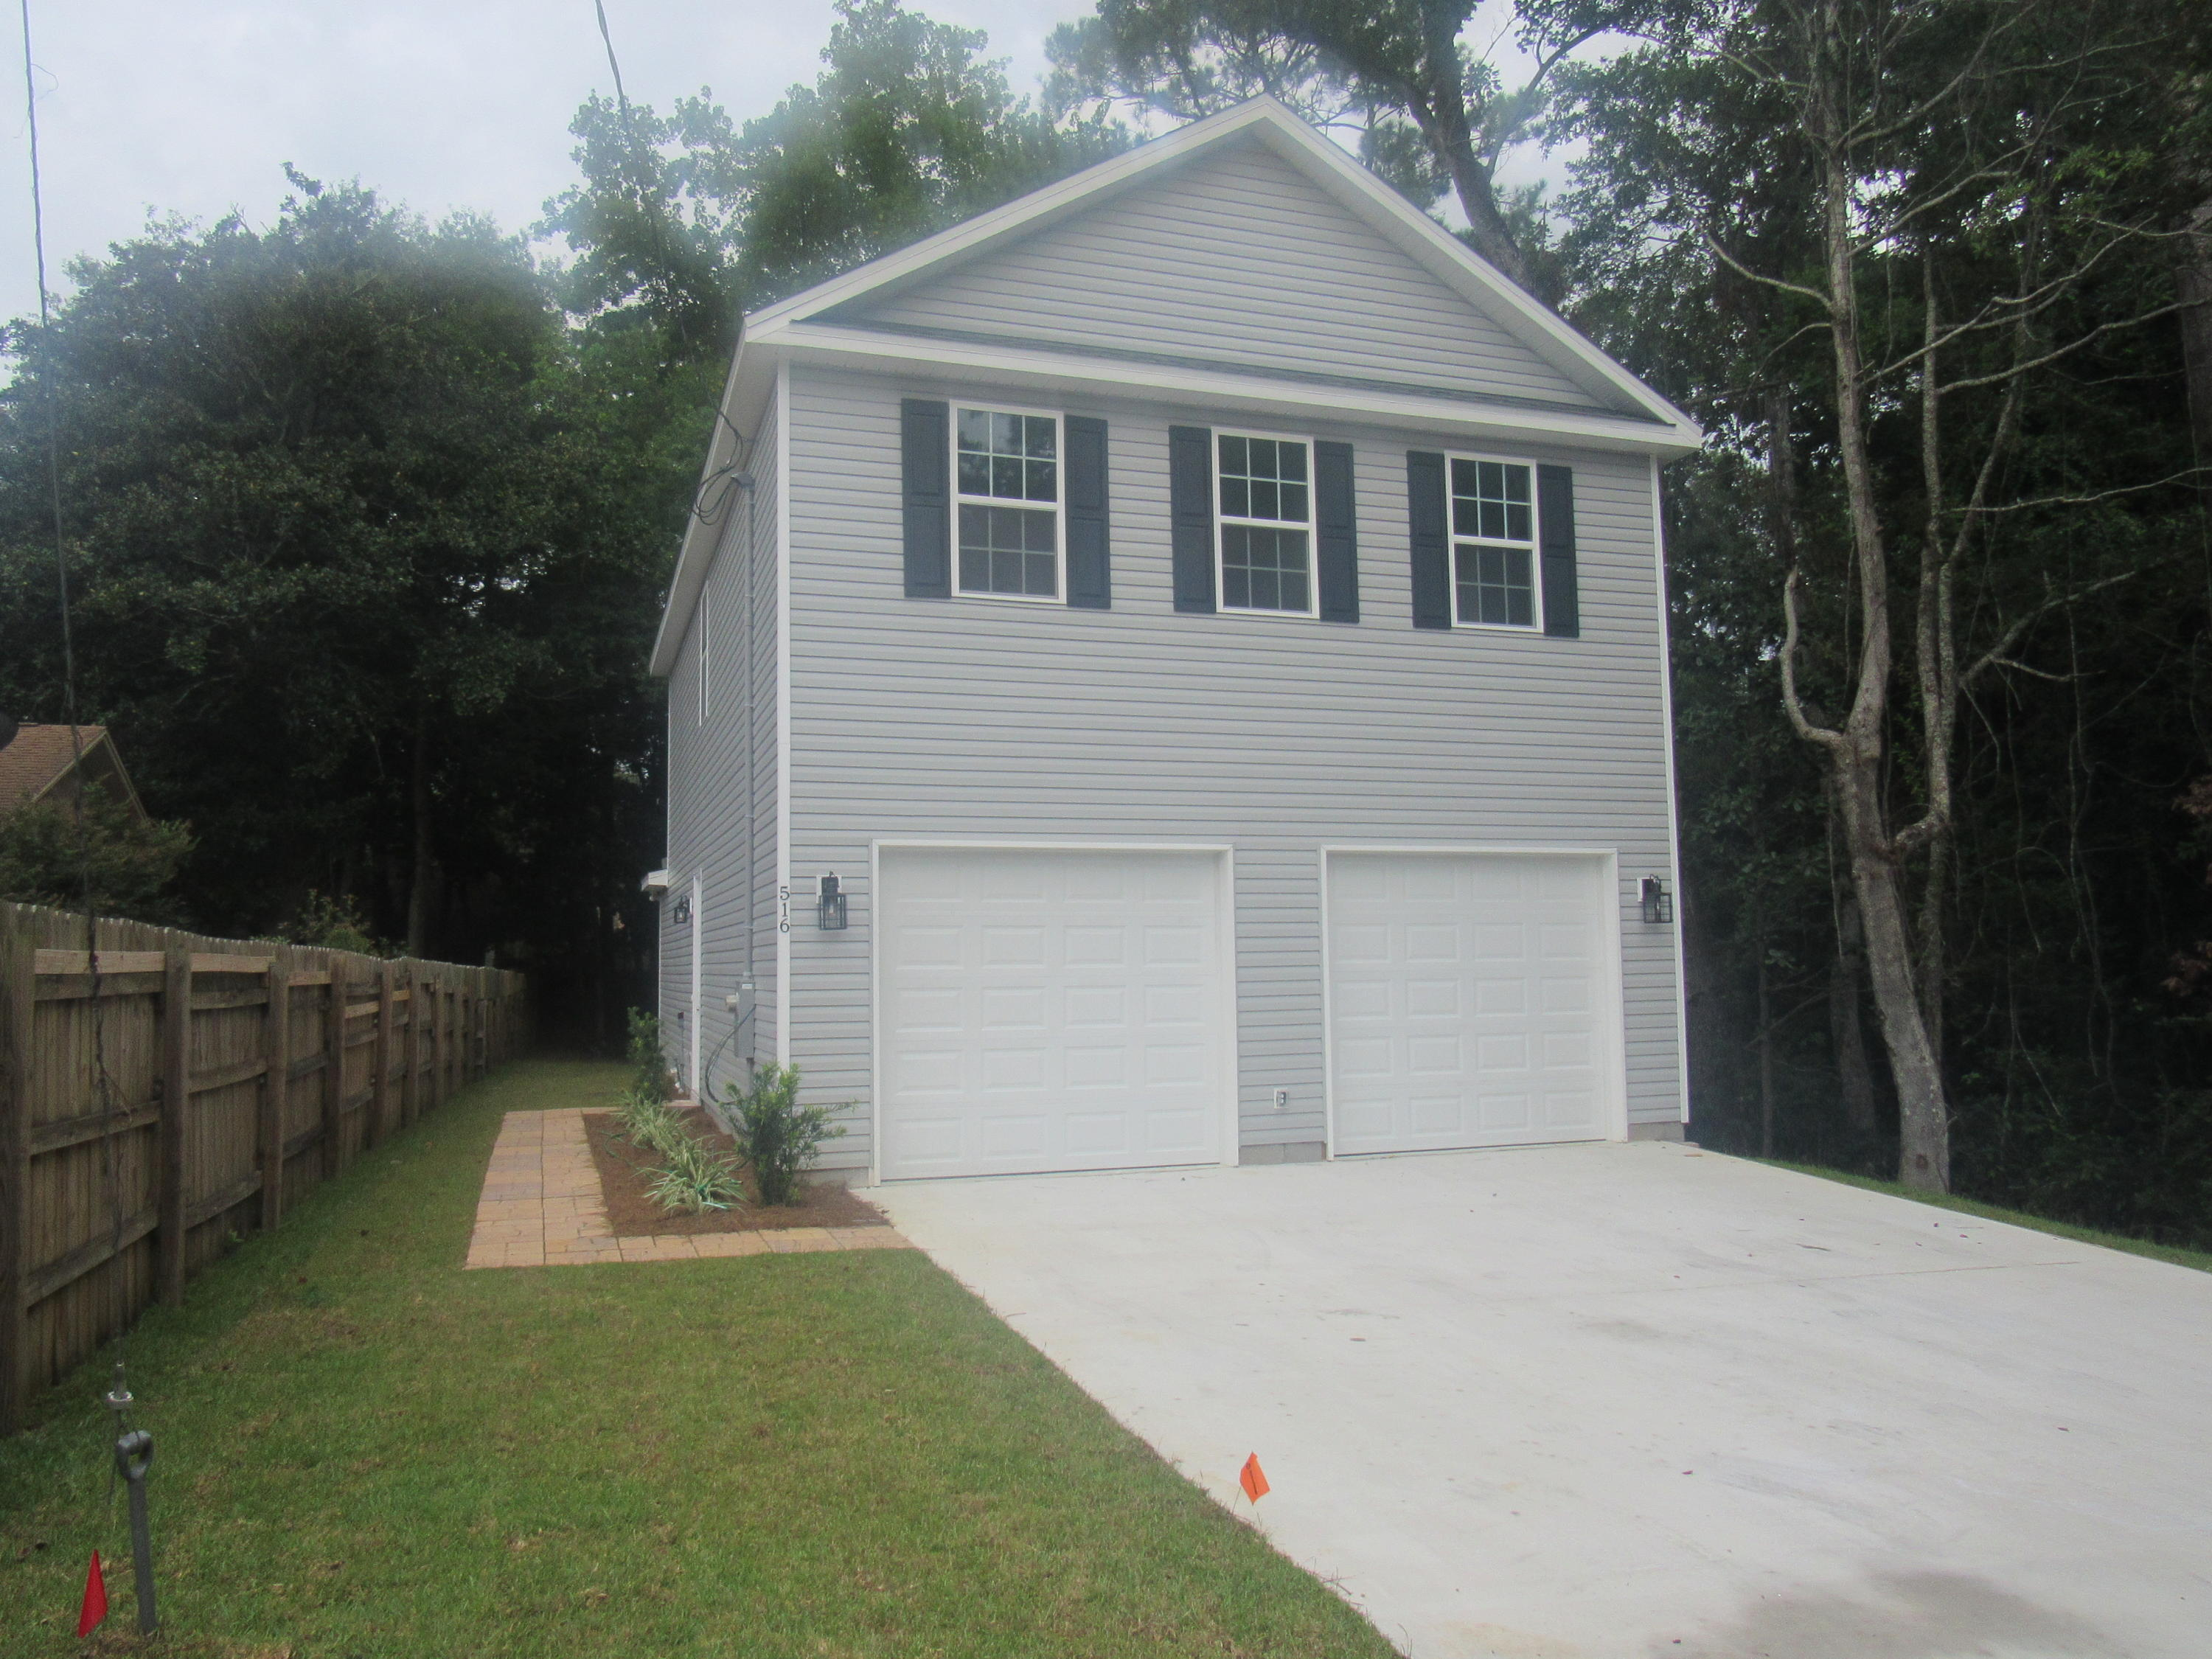 A 3 Bedroom 2 Bedroom Maple Ave Lot 11 Home